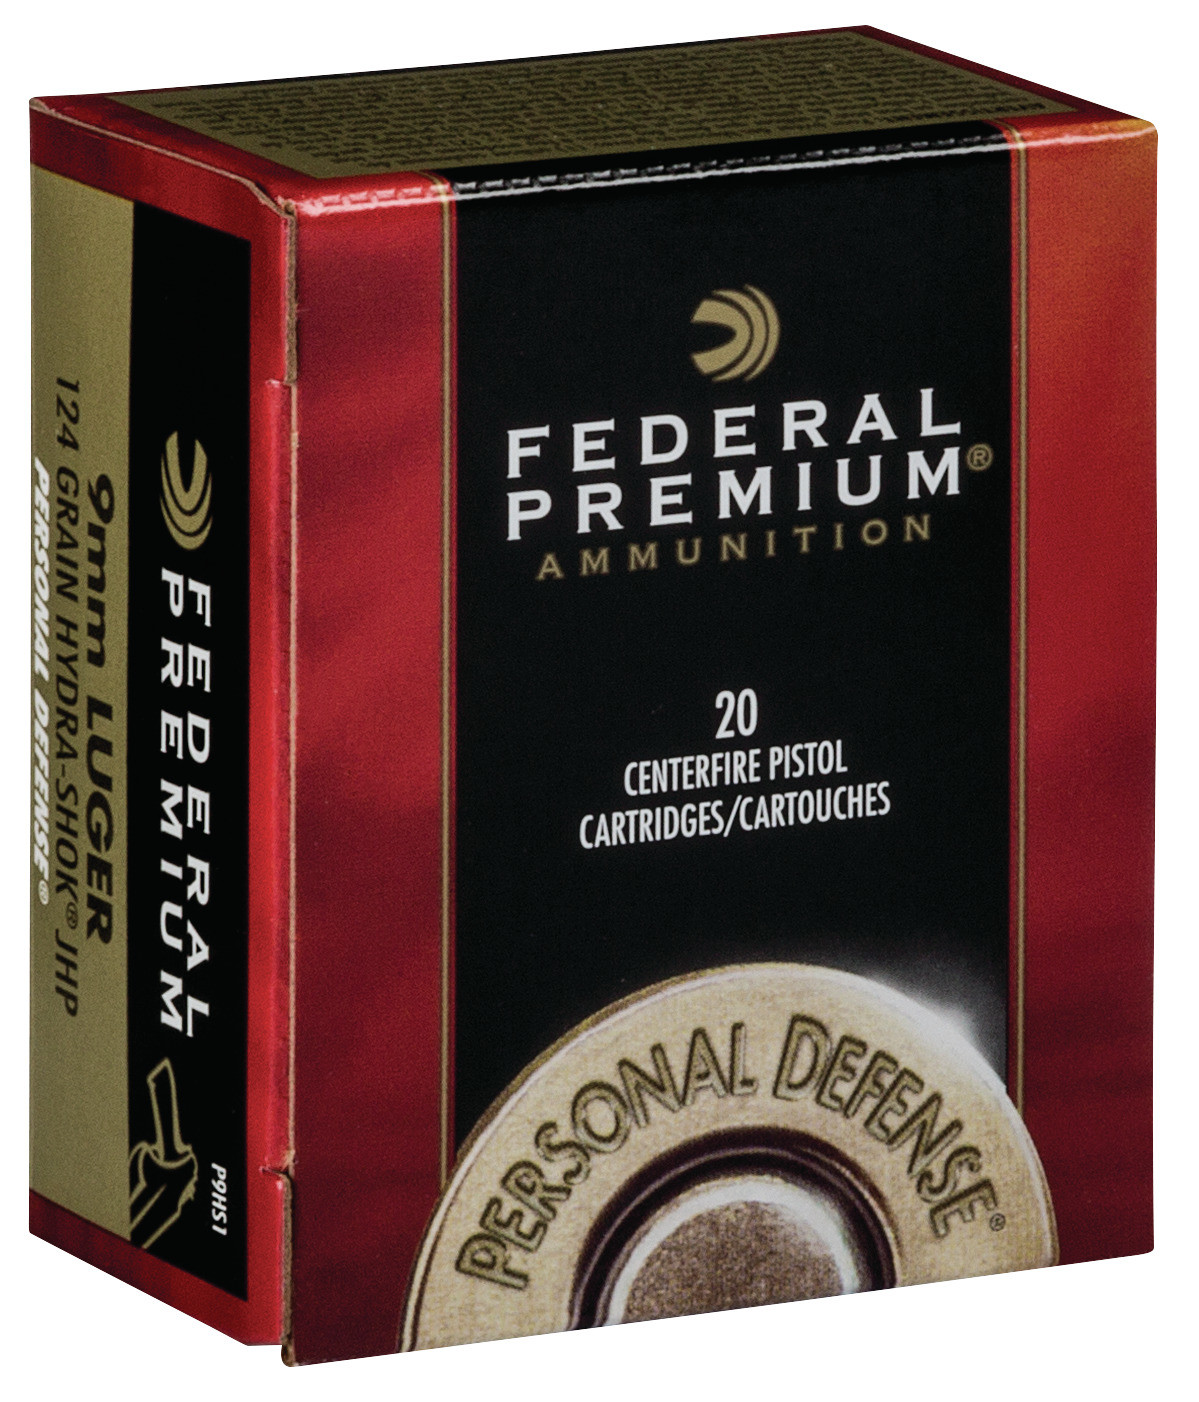 Federal Premium Personal Defense Ammunition 9mm Luger 124 Grain Hydra-Shok Jacketed Hollow Point Per 20